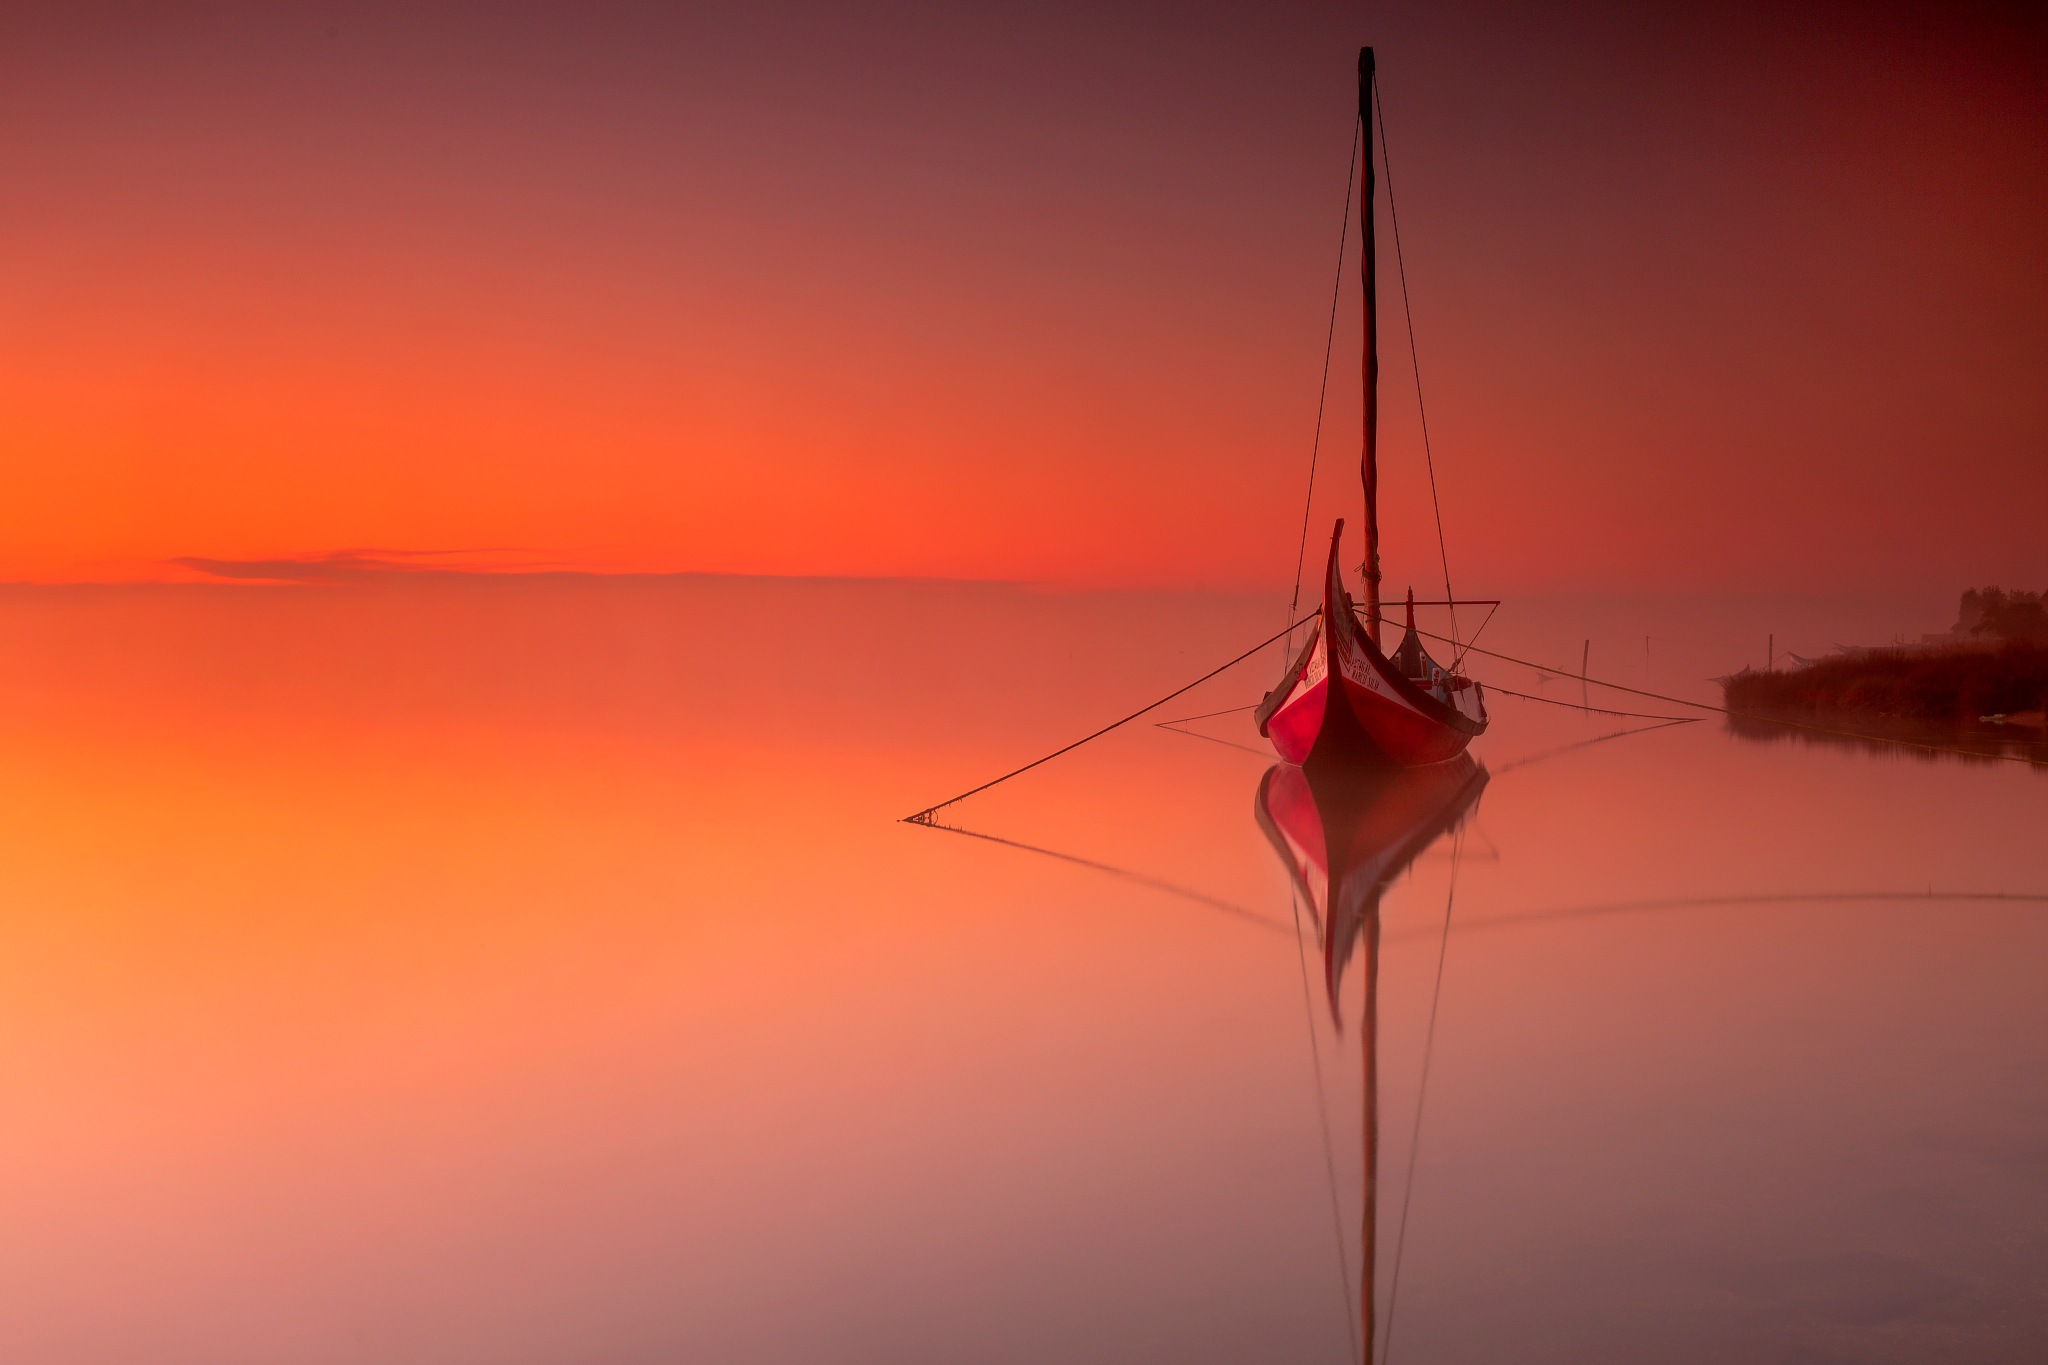 red boat by nsg